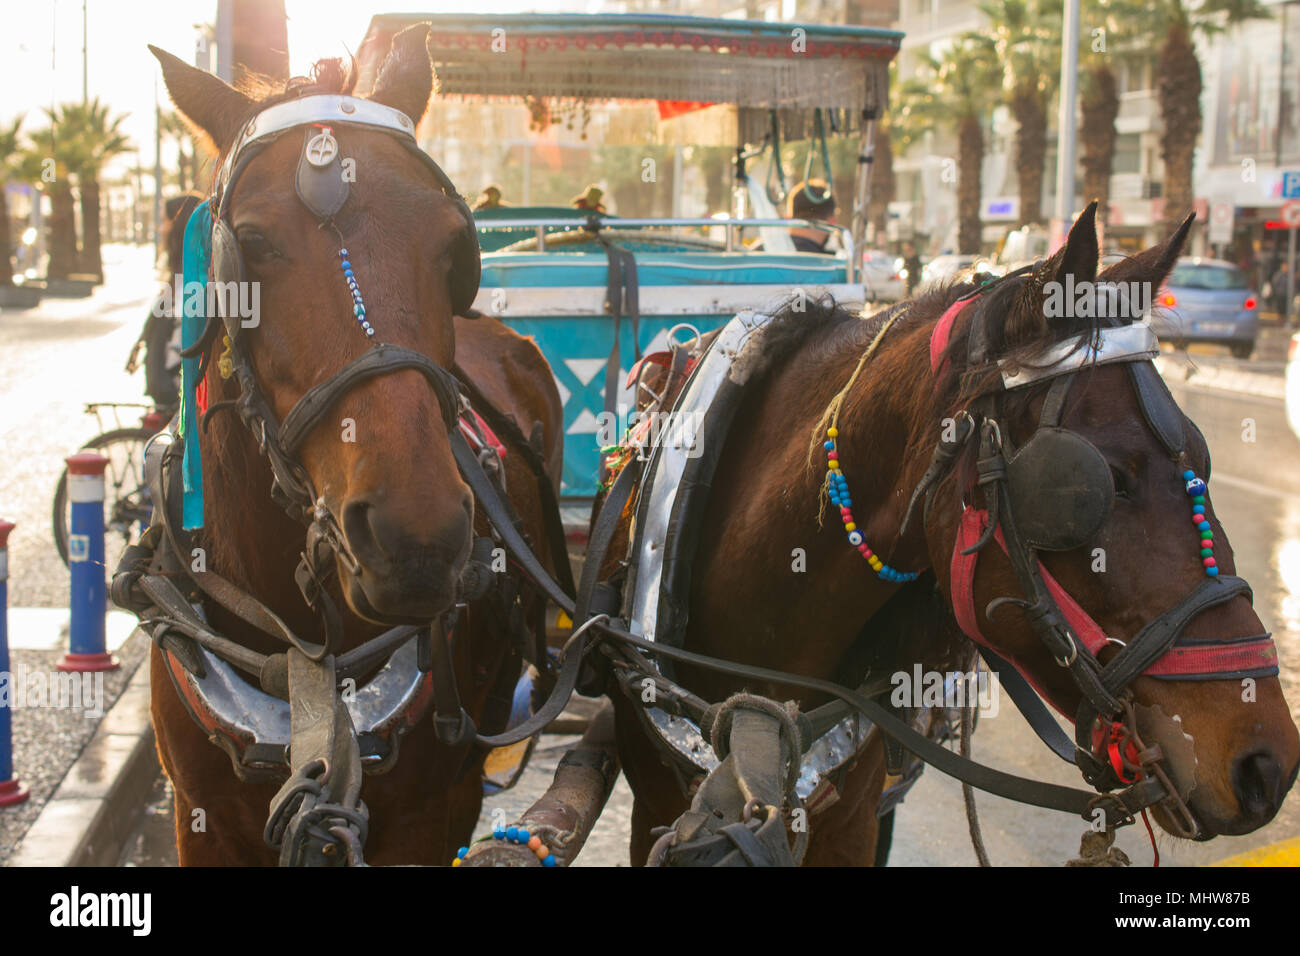 phaeton and two horse. tired horses. the evening sun comes over. they are waiting for the phaeton customers. Horse Carrier. - Stock Image